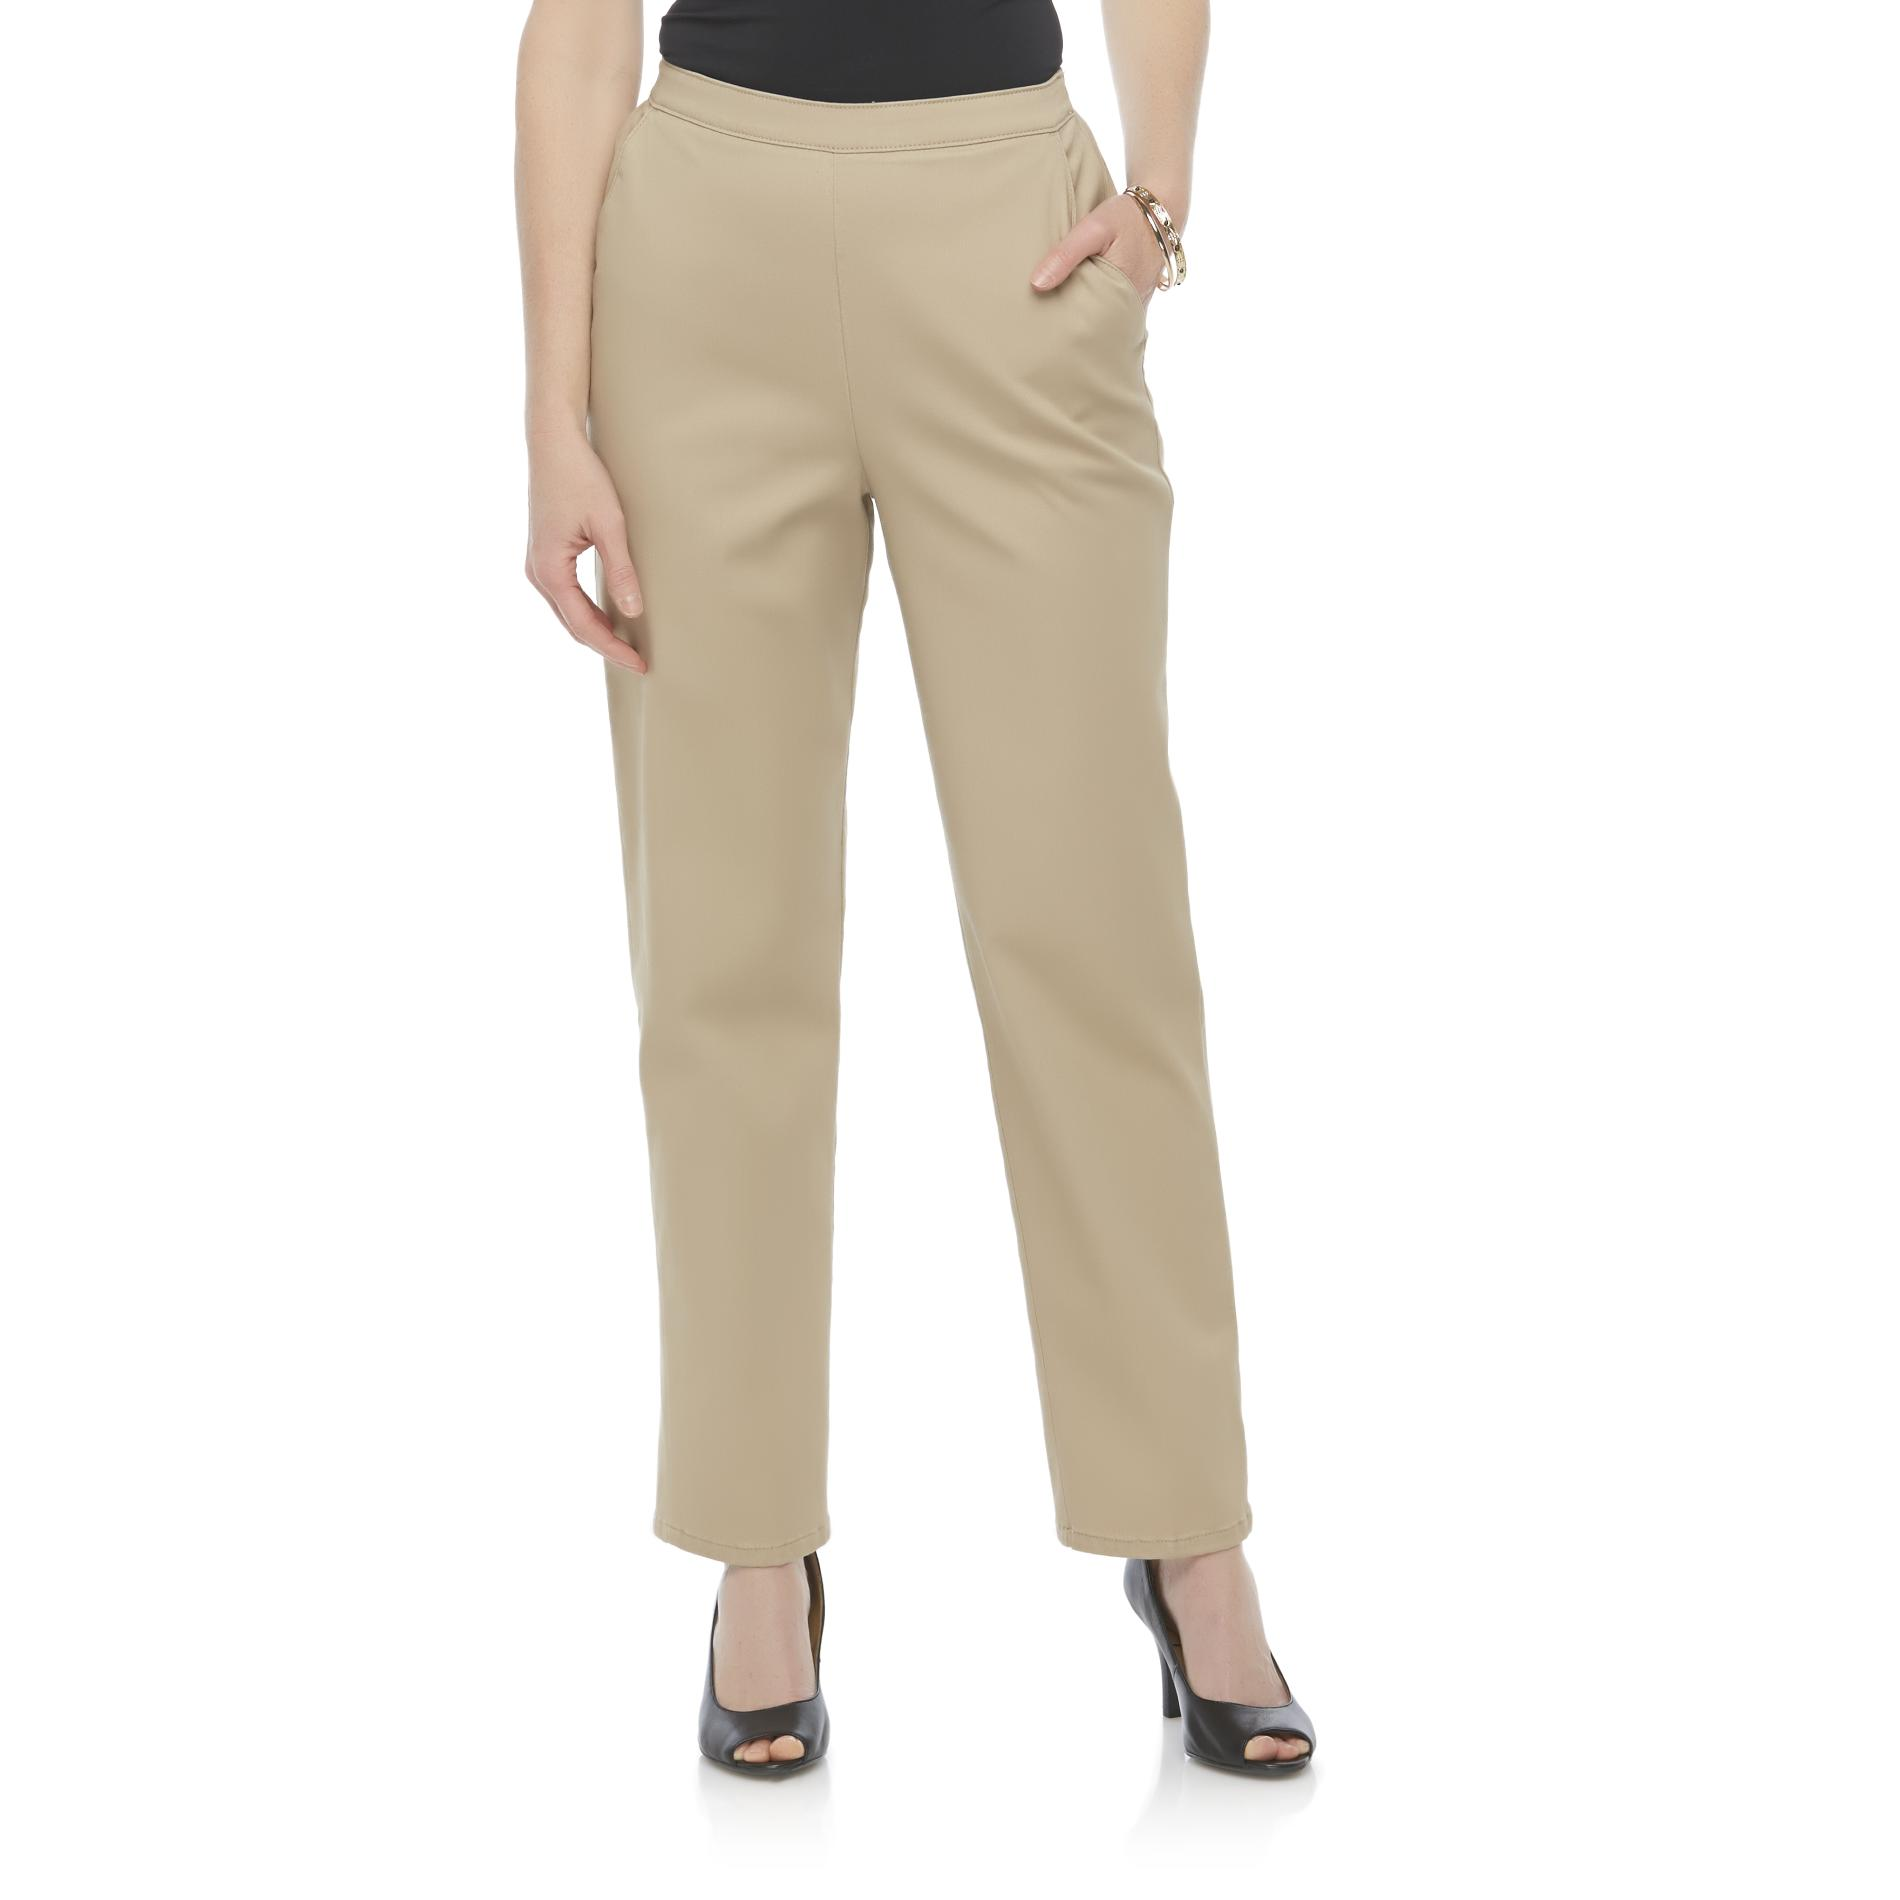 womens cargo pants sears photo - 2